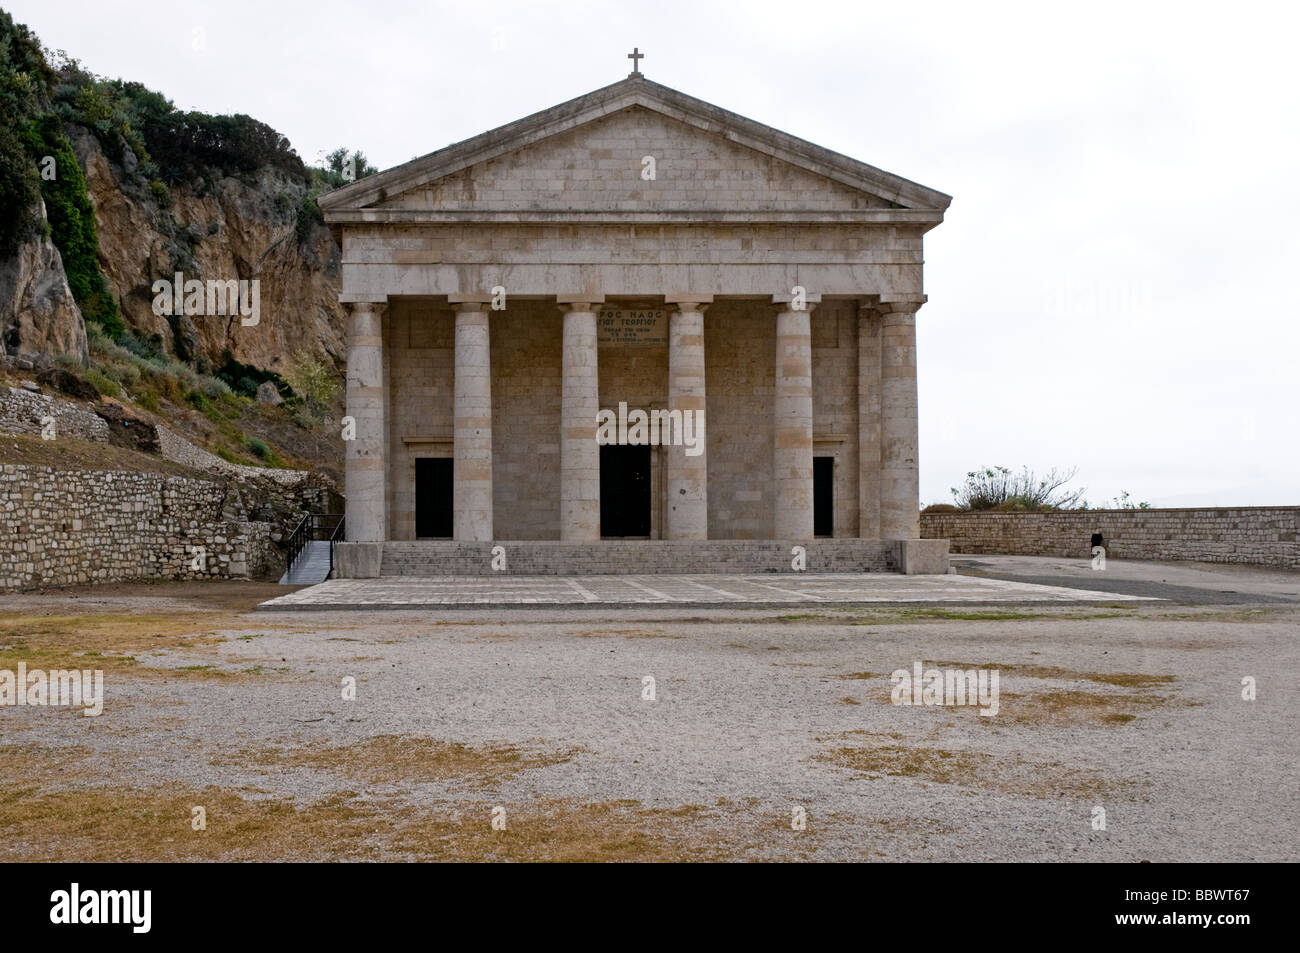 St George's Church built in a Neo-classical style with six Doric columns by the British in 1870, Old Fortress, - Stock Image